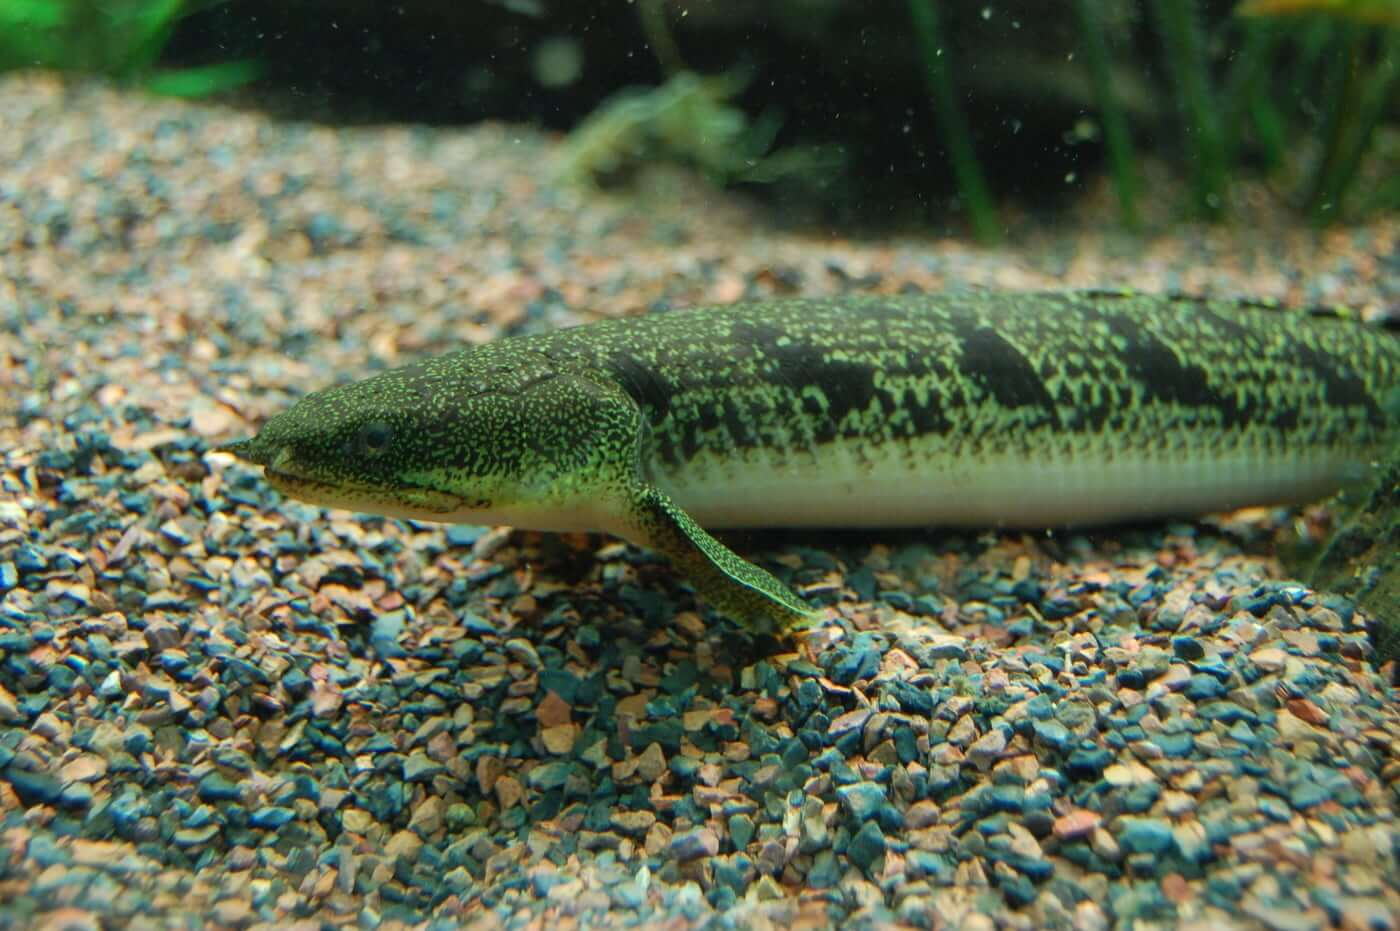 Bichir on the substrate